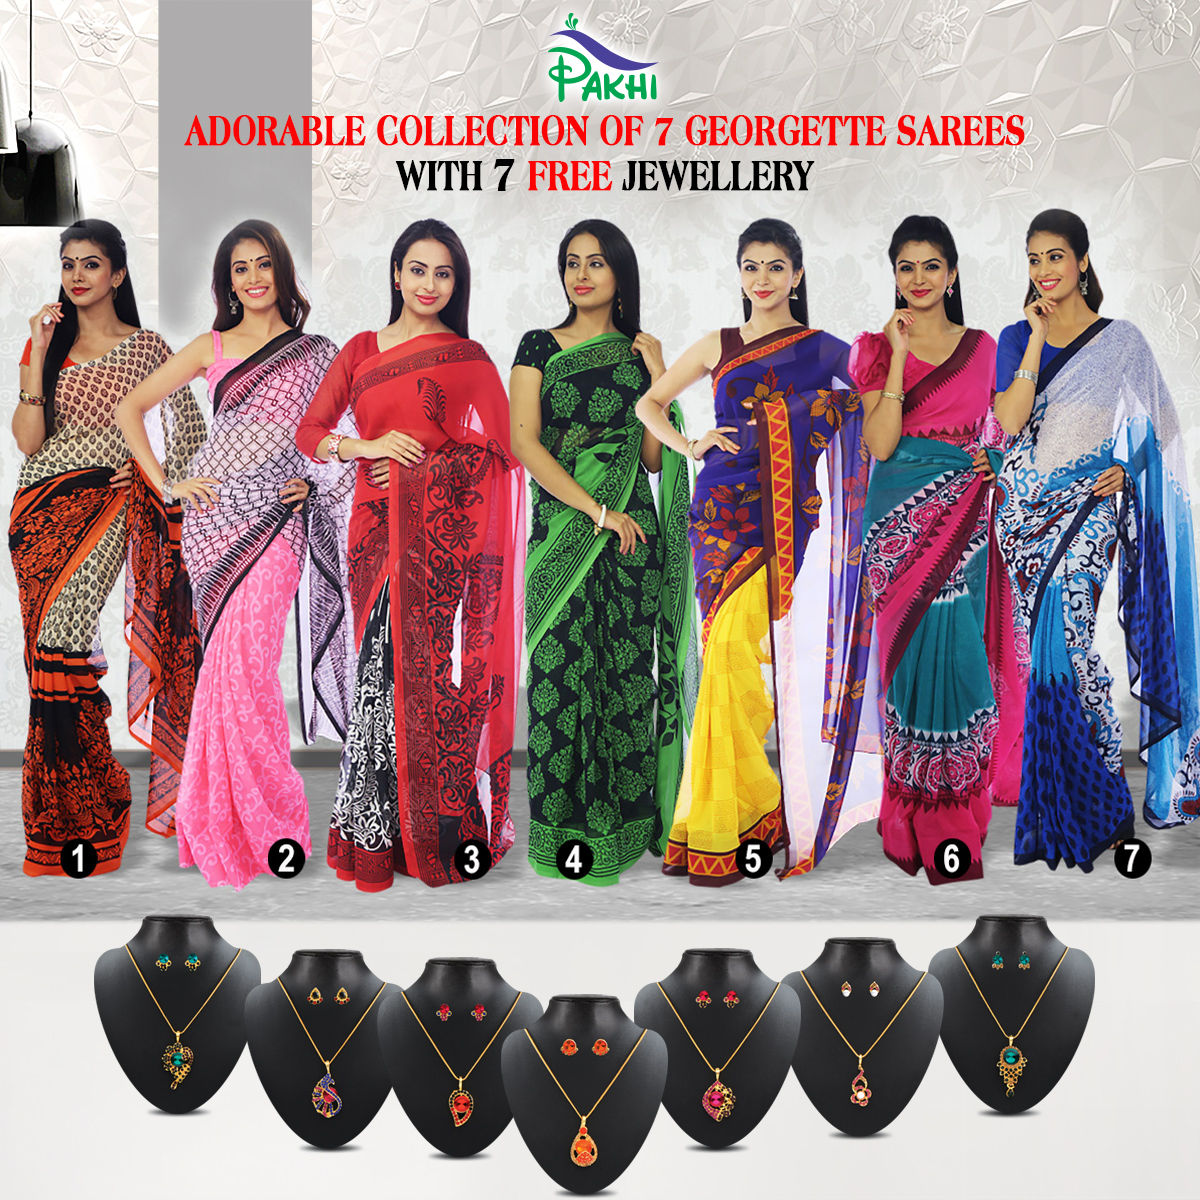 Buy Adorable Collection of 7 Georgette Sarees (7G14) with 7 Free Jewellery  Online at Best Price in India on Naaptol.com